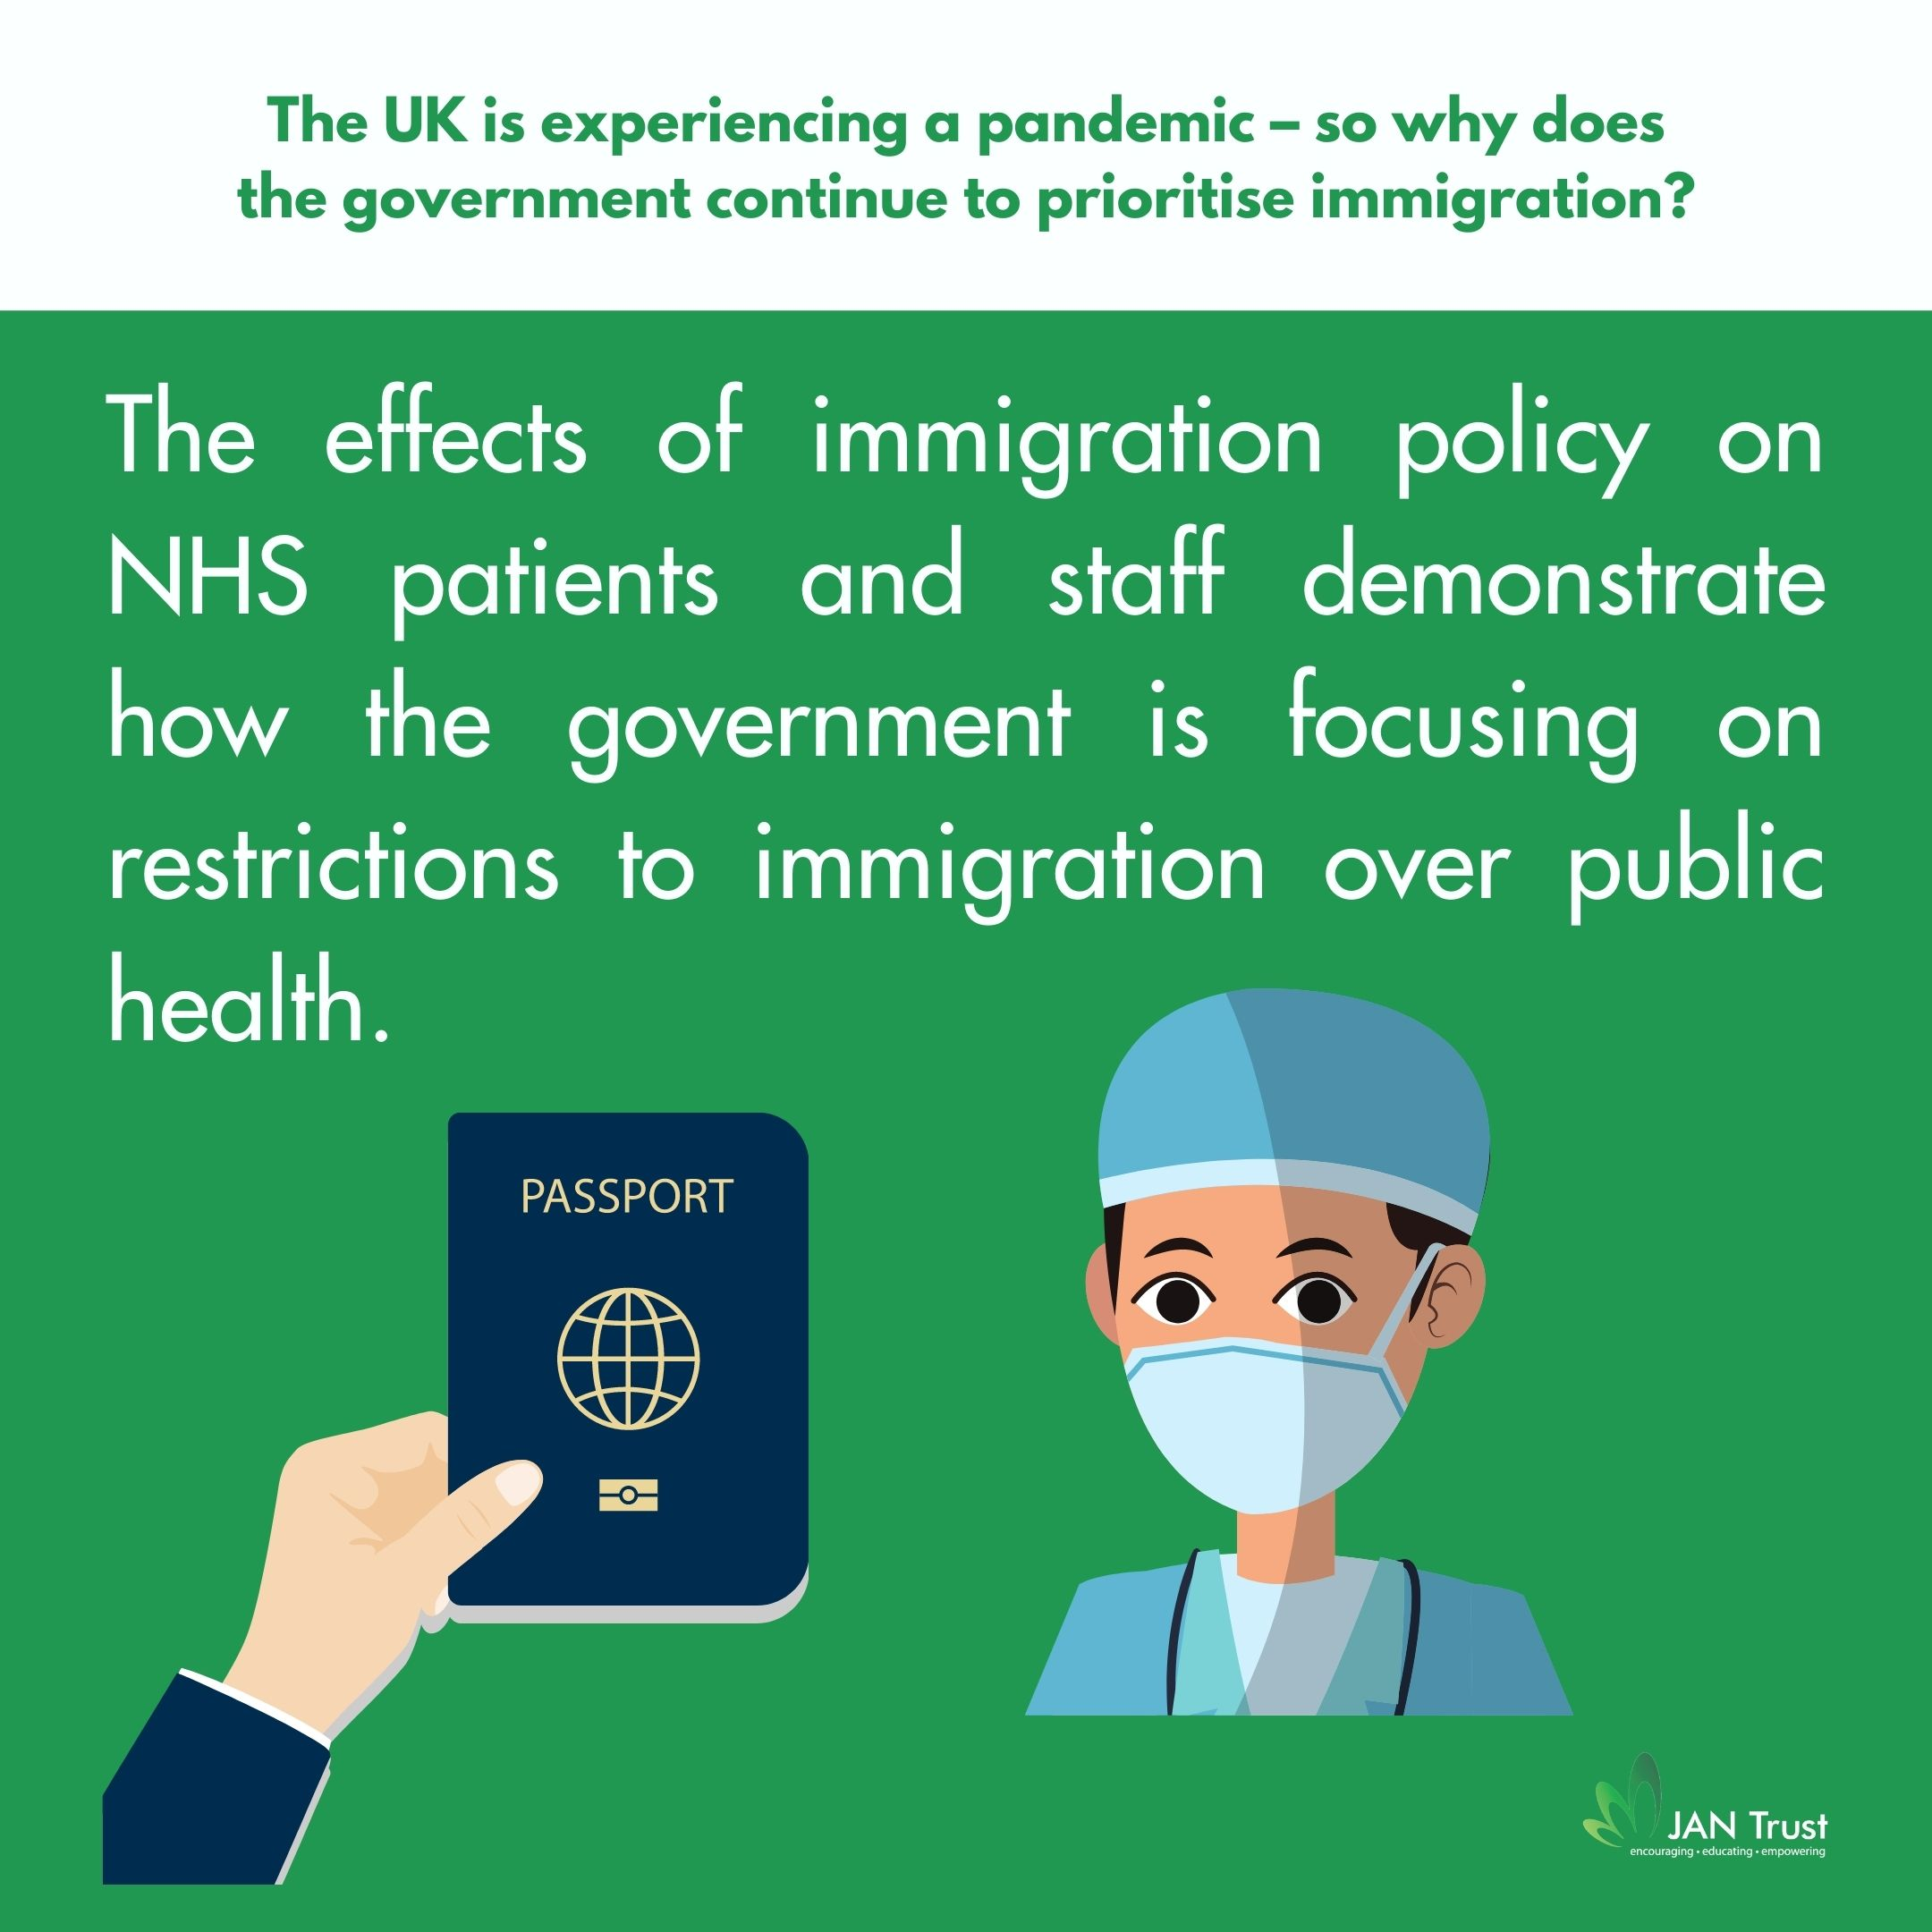 The UK is experiencing a pandemic – so why does the government continue to prioritise immigration?